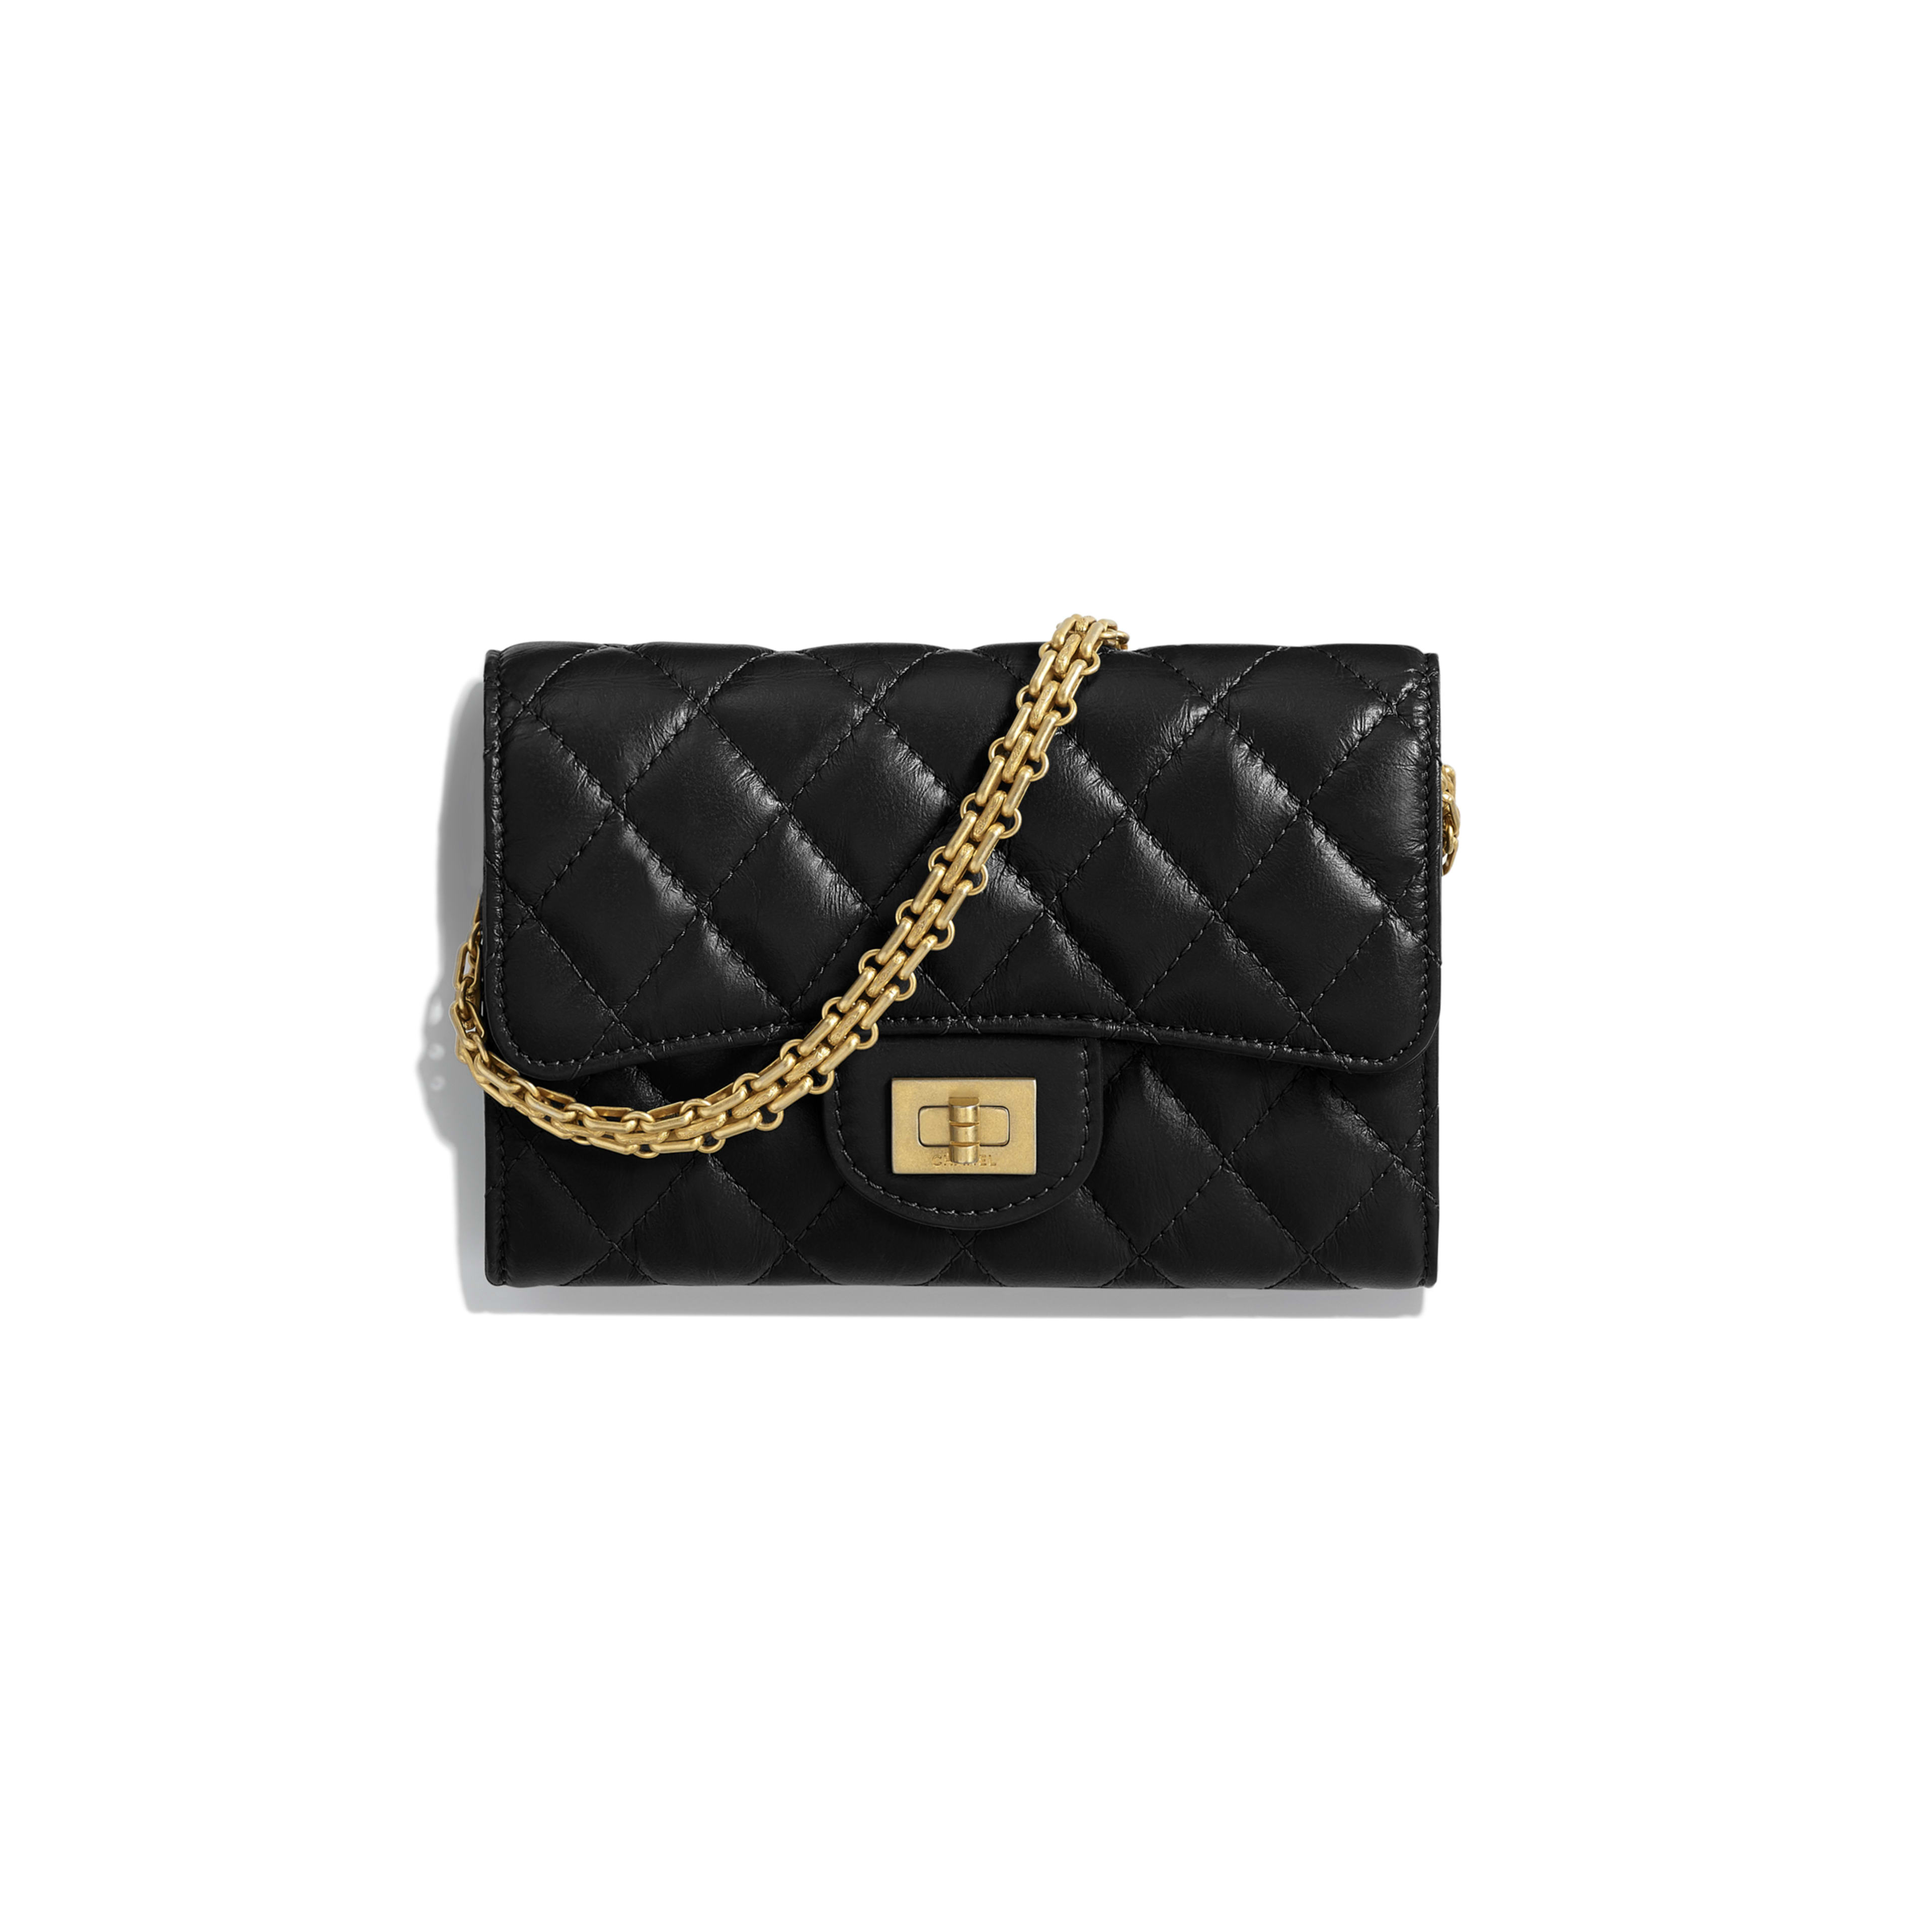 2.55 Clutch with Chain - Black - Aged Calfskin & Gold-Tone Metal - Default view - see full sized version